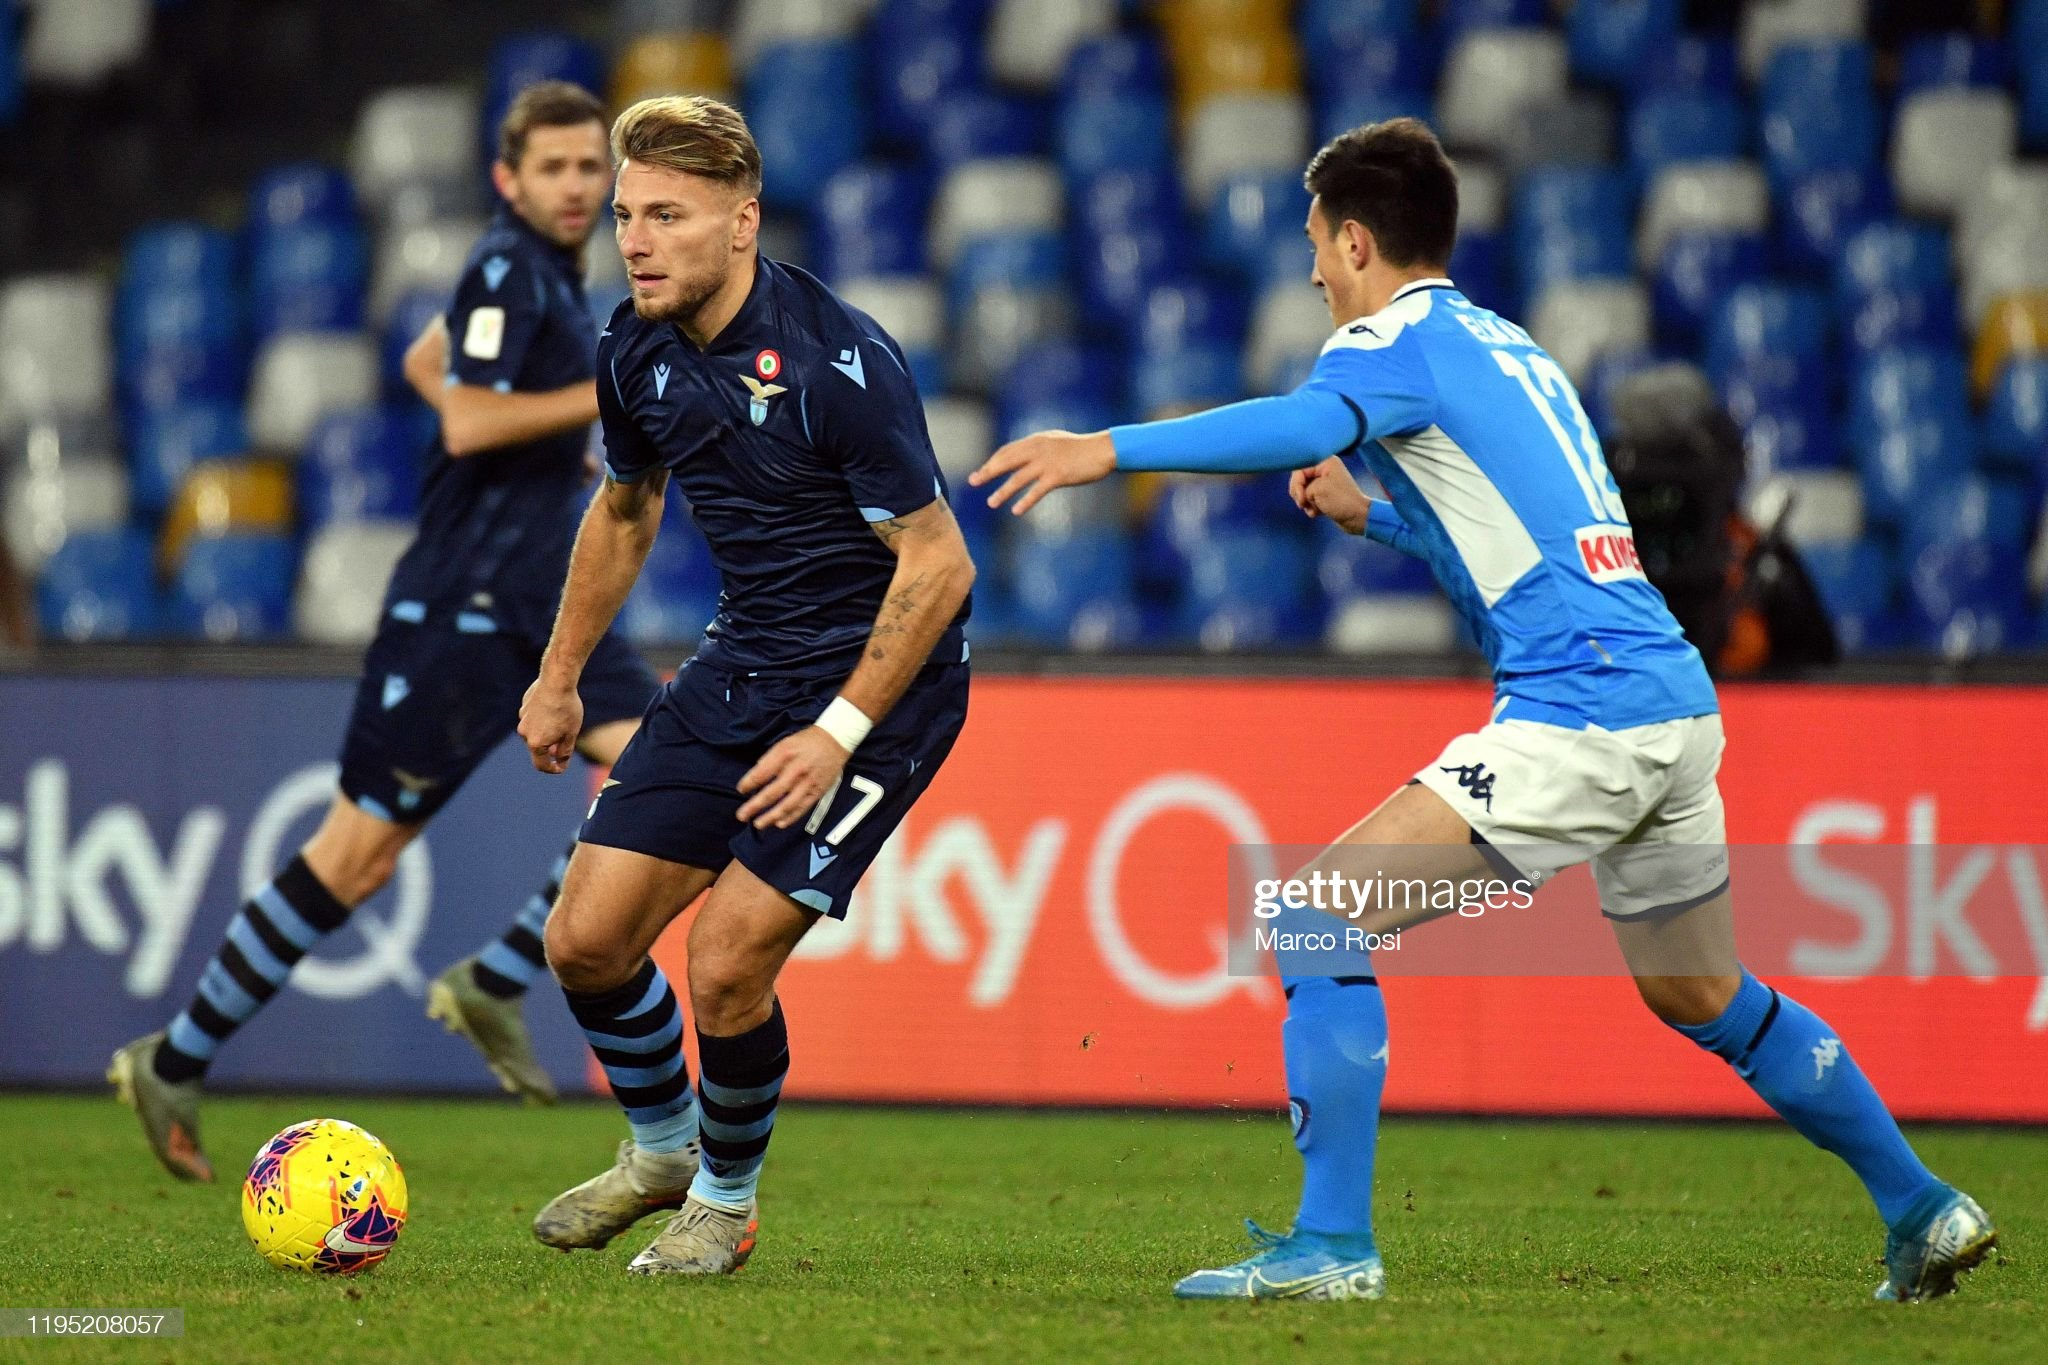 Napoli vs Lazio Preview, prediction and odds